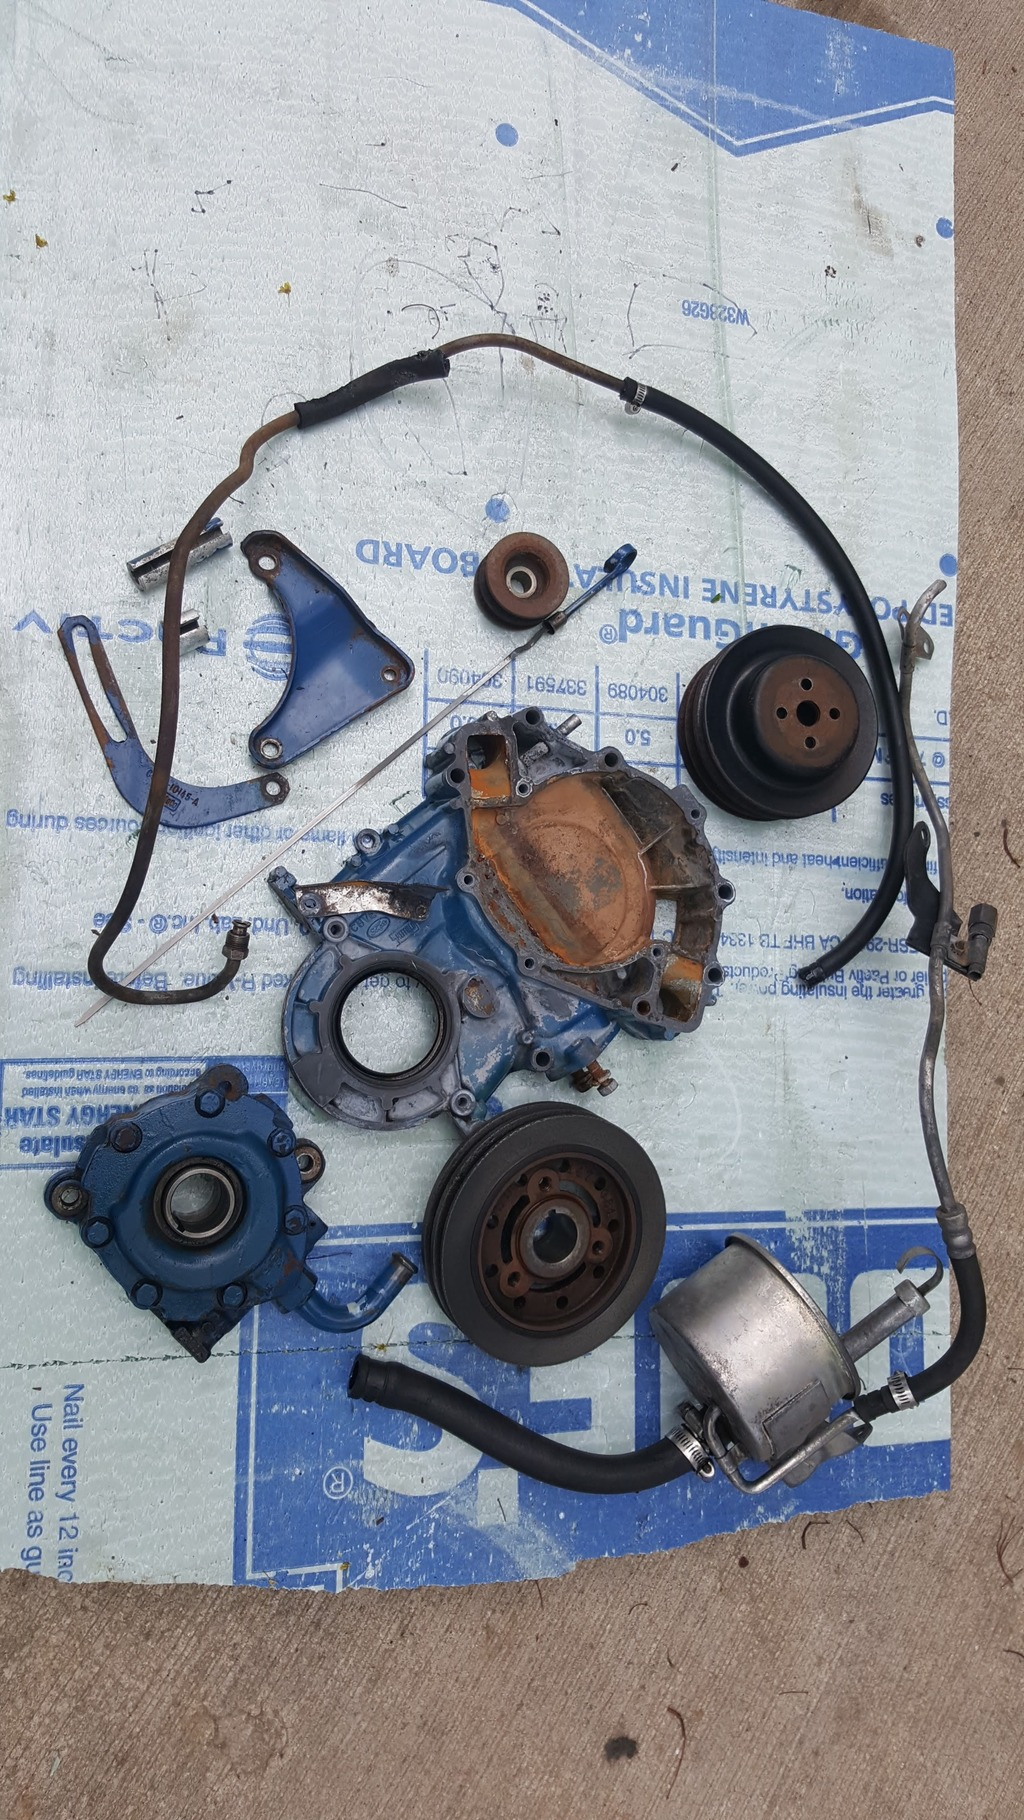 1968 1969 Lincoln 460 crank driven power steering pump and extras   $500 OBO 20160516_172307_zpsak9w2hrb